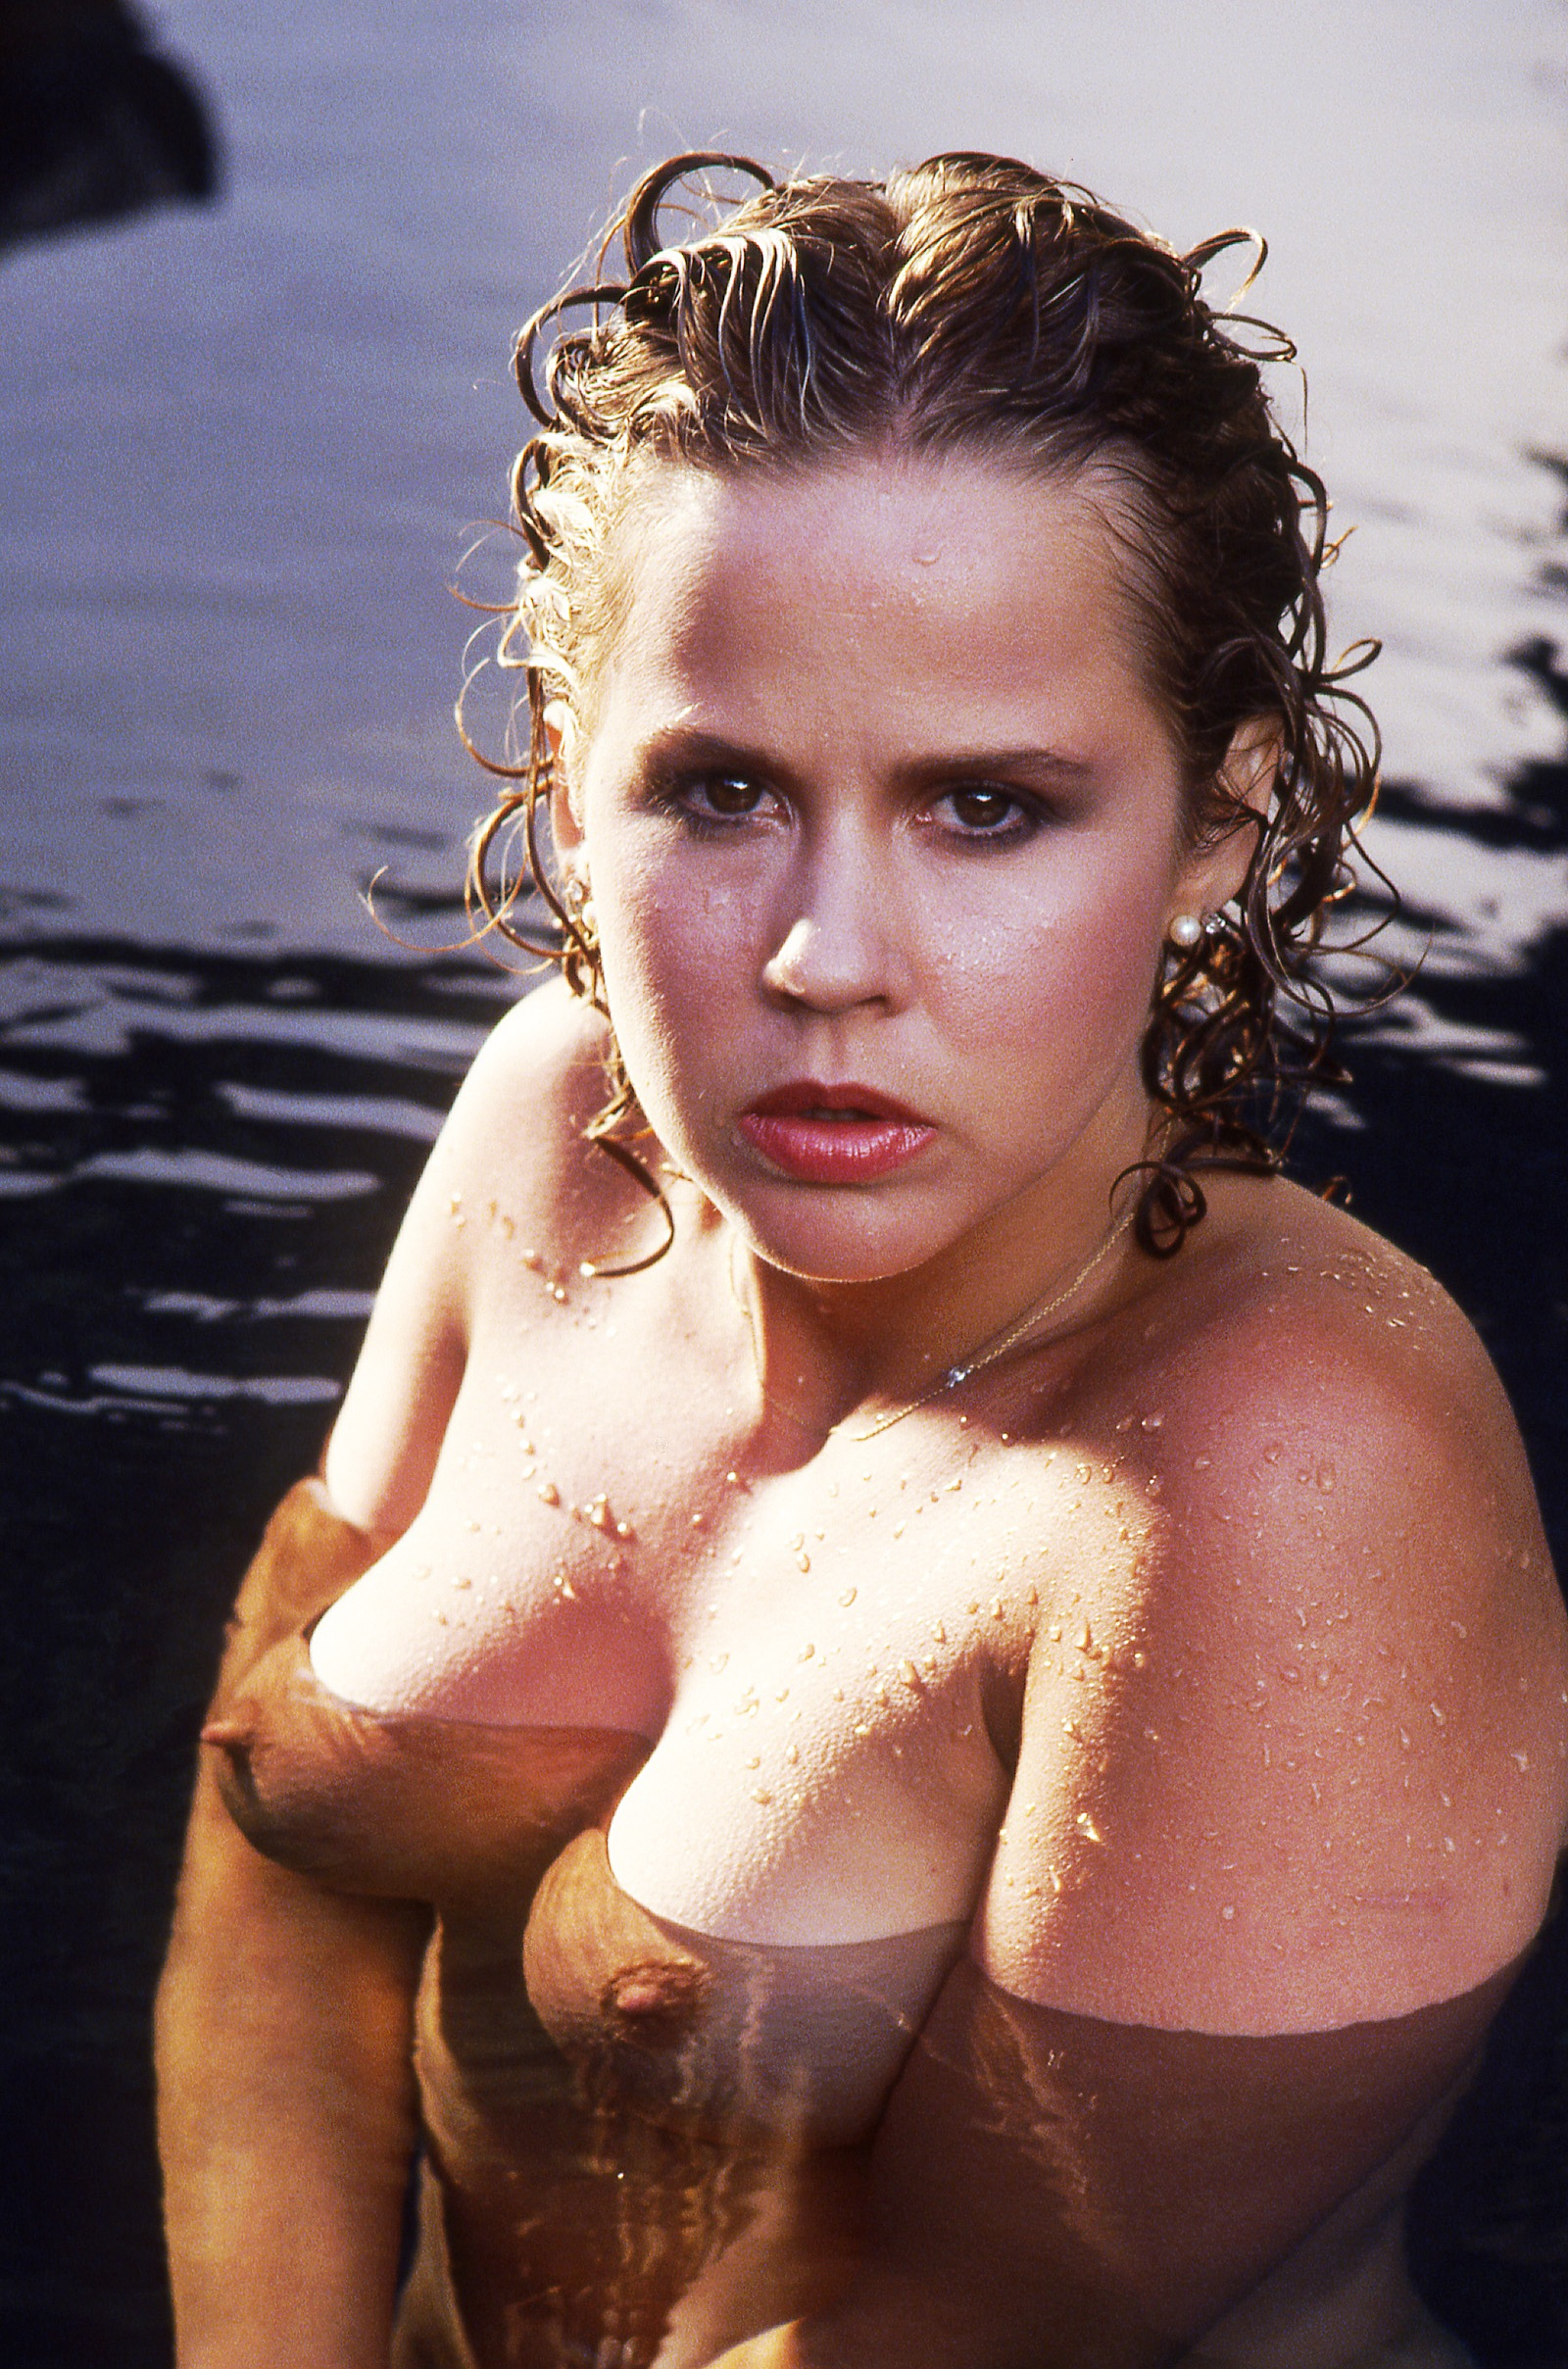 Linda blair nipples all